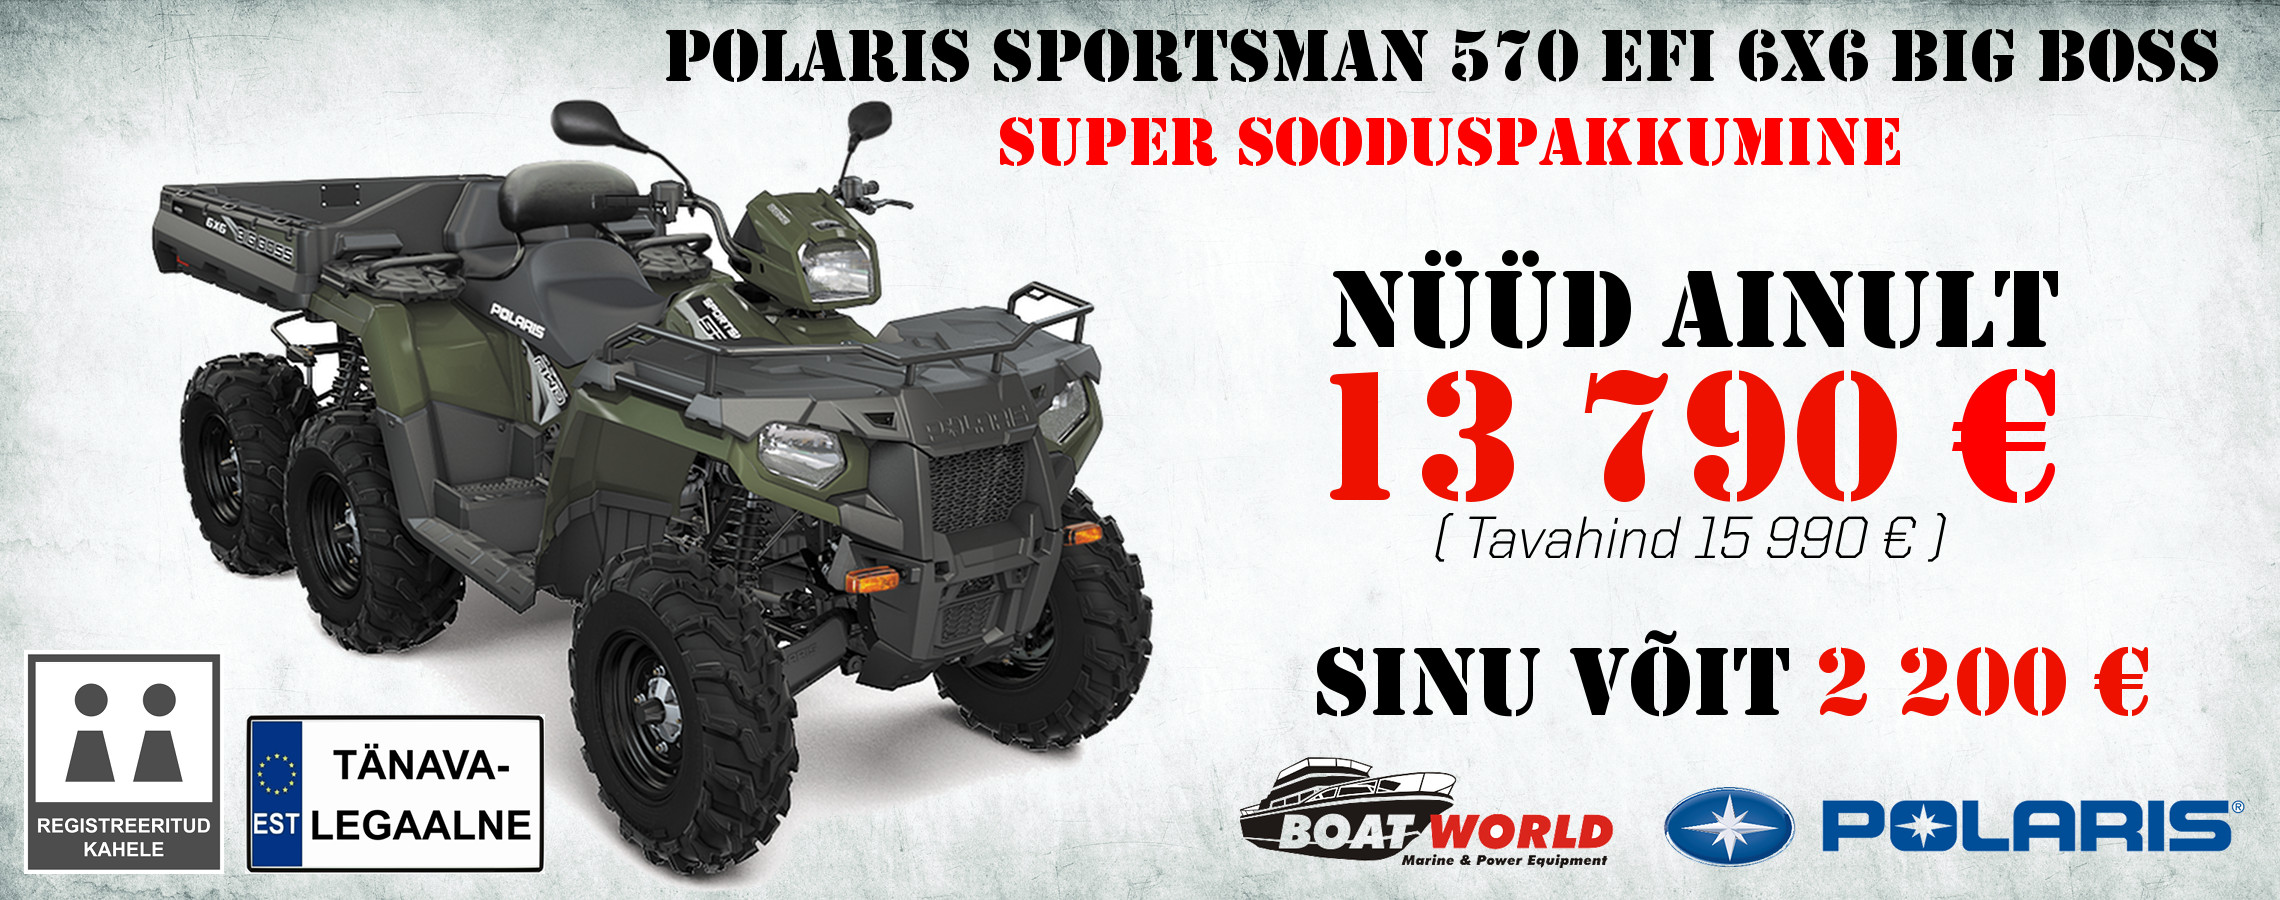 Polaris Sportsman 570 EPS EFI 6x6 Big Boss kampaania Background